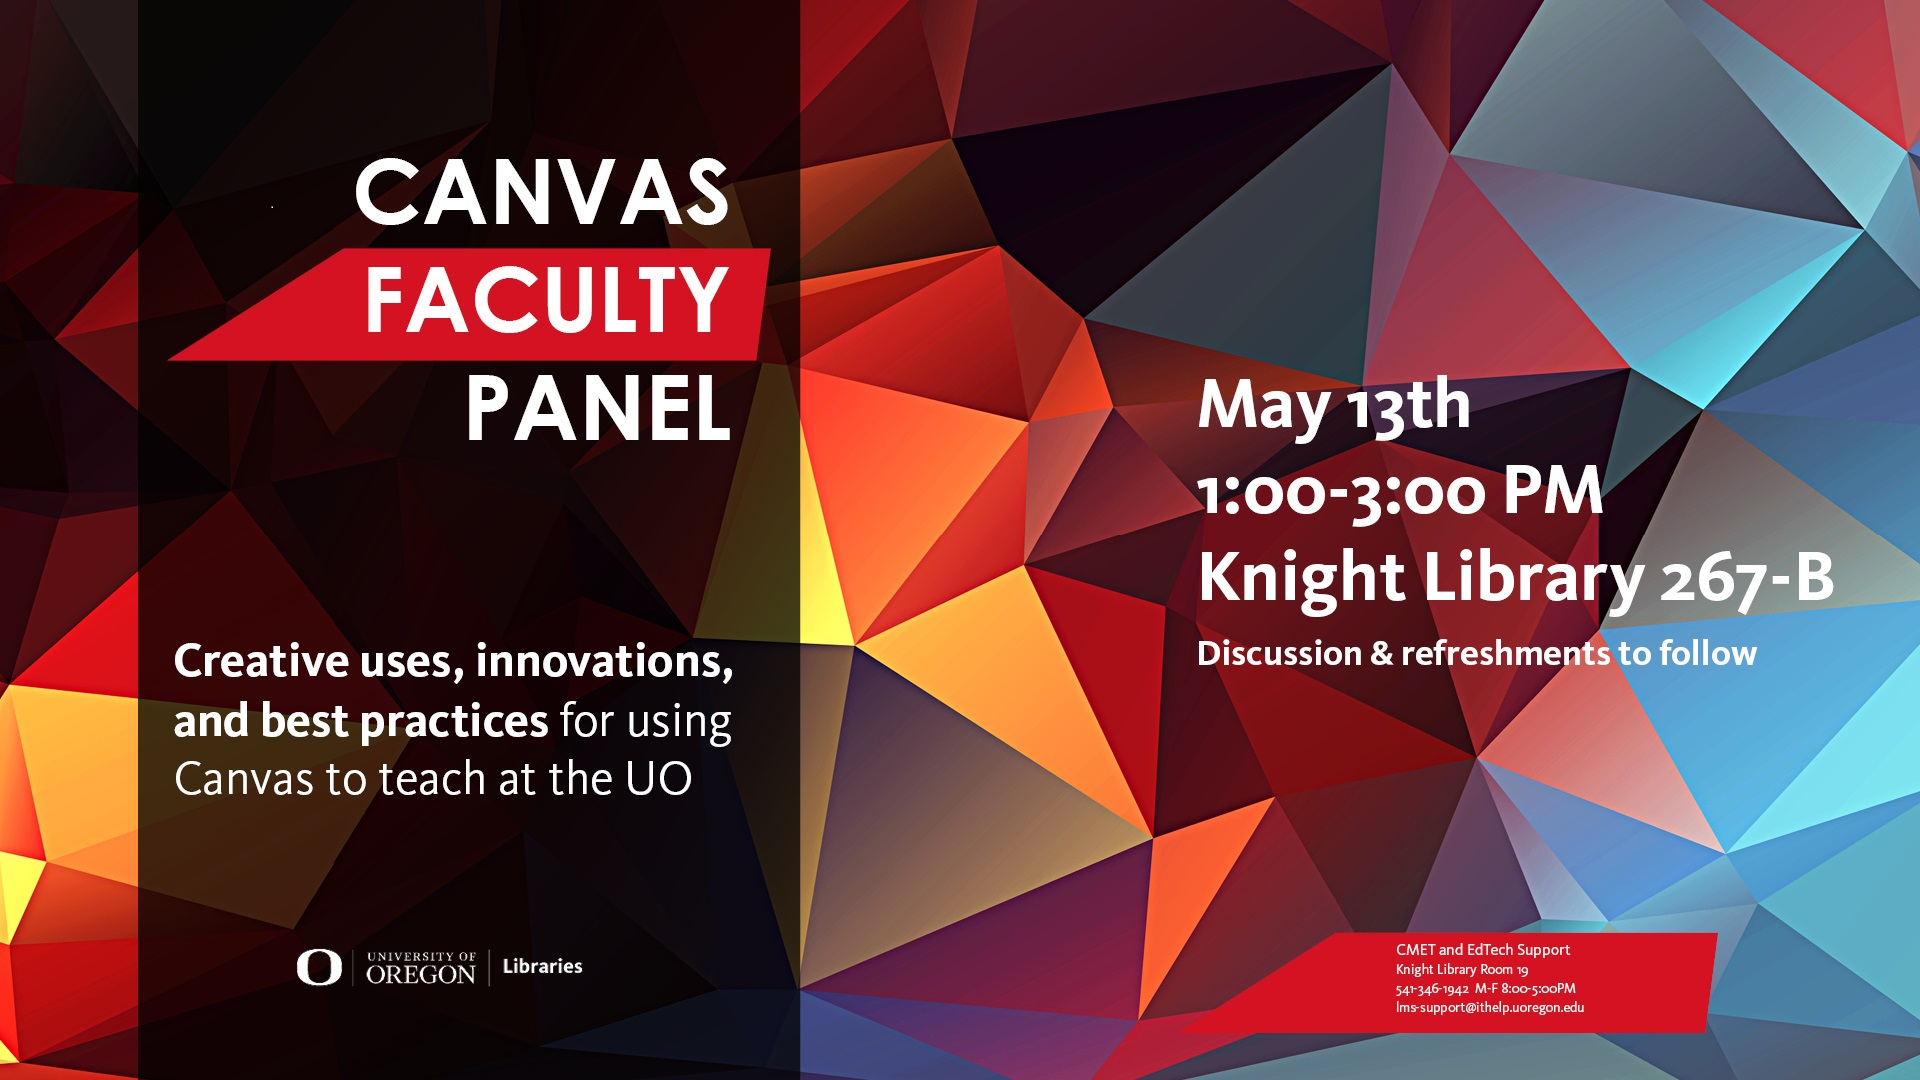 Poster image for UO Libraries' Canvas Faculty Panel